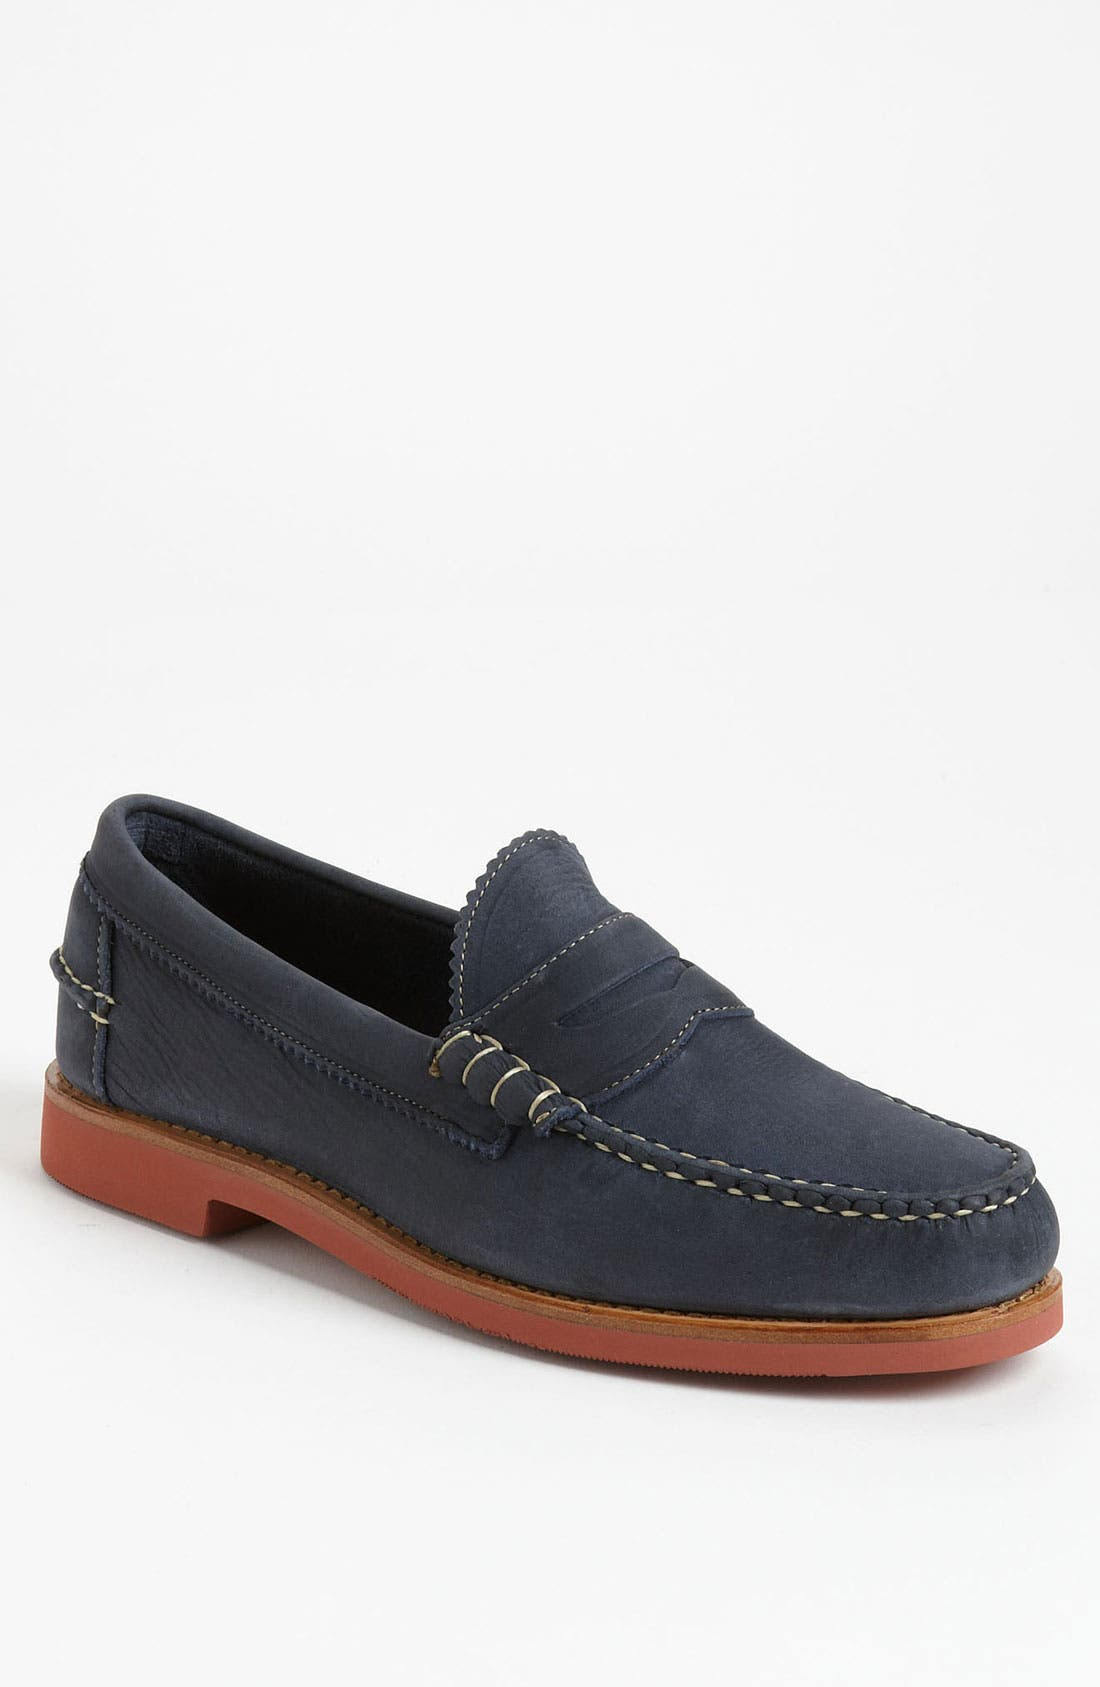 Main Image - Allen Edmonds 'Sedona' Penny Loafer (Online Only)